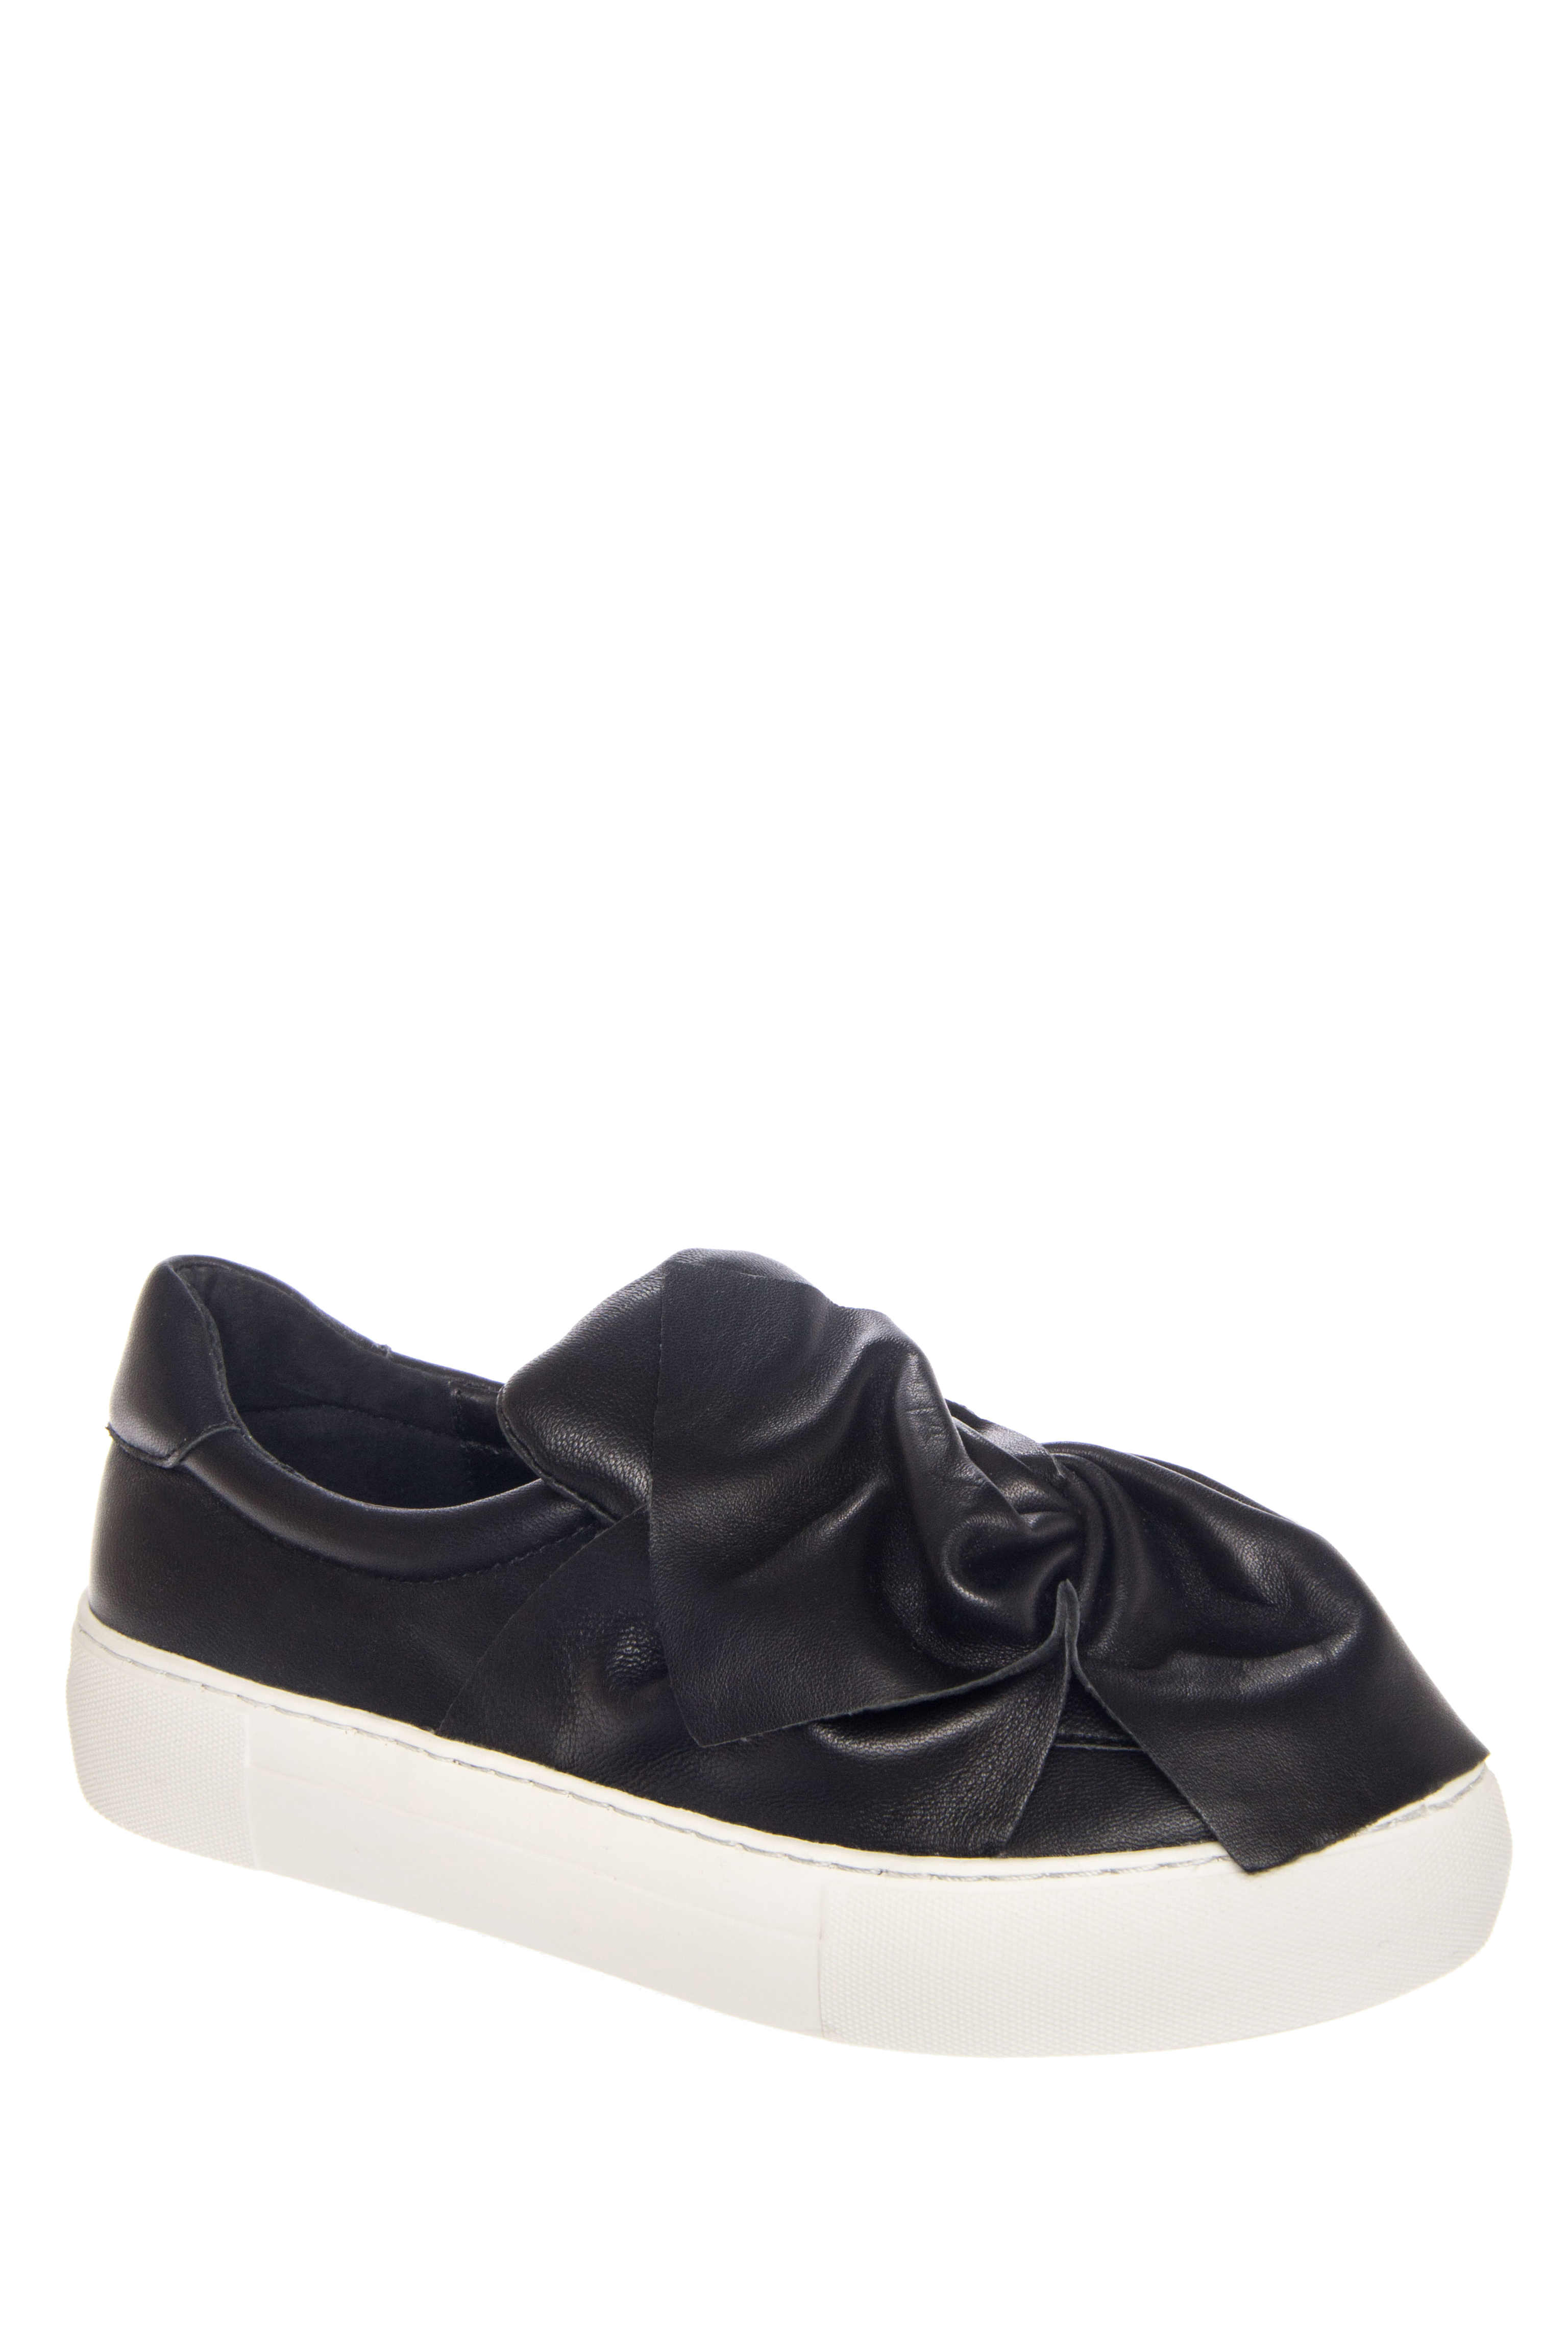 J/SLIDES Annabelle Leather Bow Platform Sneakers - Black